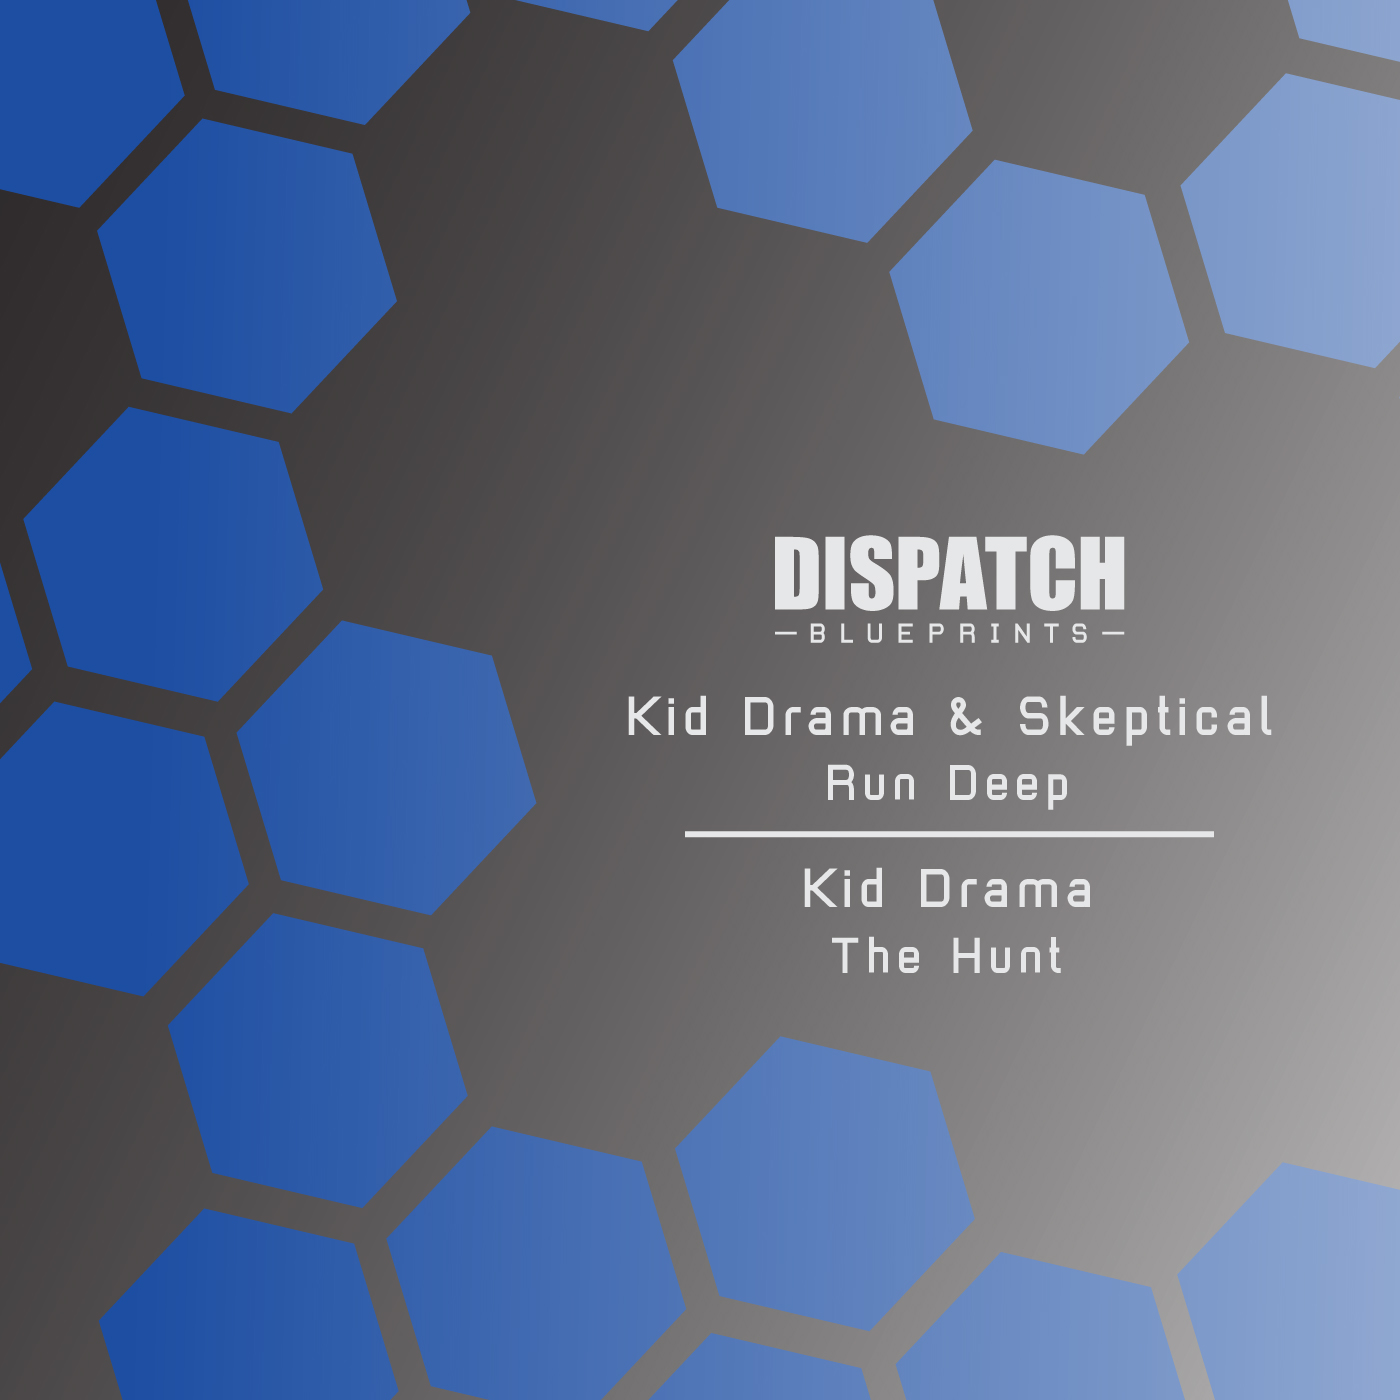 Dispatch blueprints dispatch recordings dispatch blueprints 002 kid drama skeptical malvernweather Choice Image